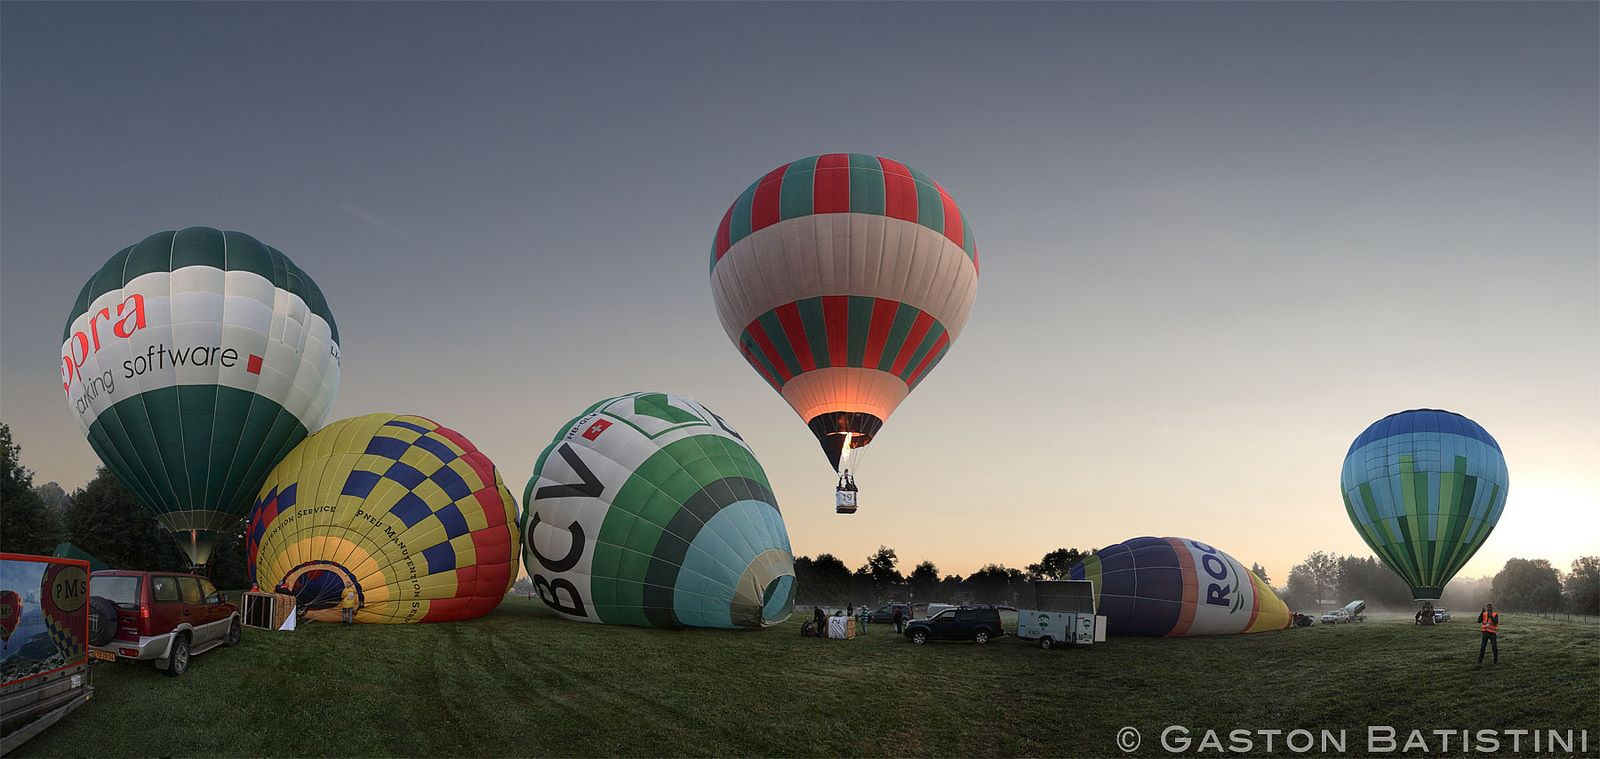 Weekend august 21-23 - Hottolfiades: 20th edition of the hot flying balloons